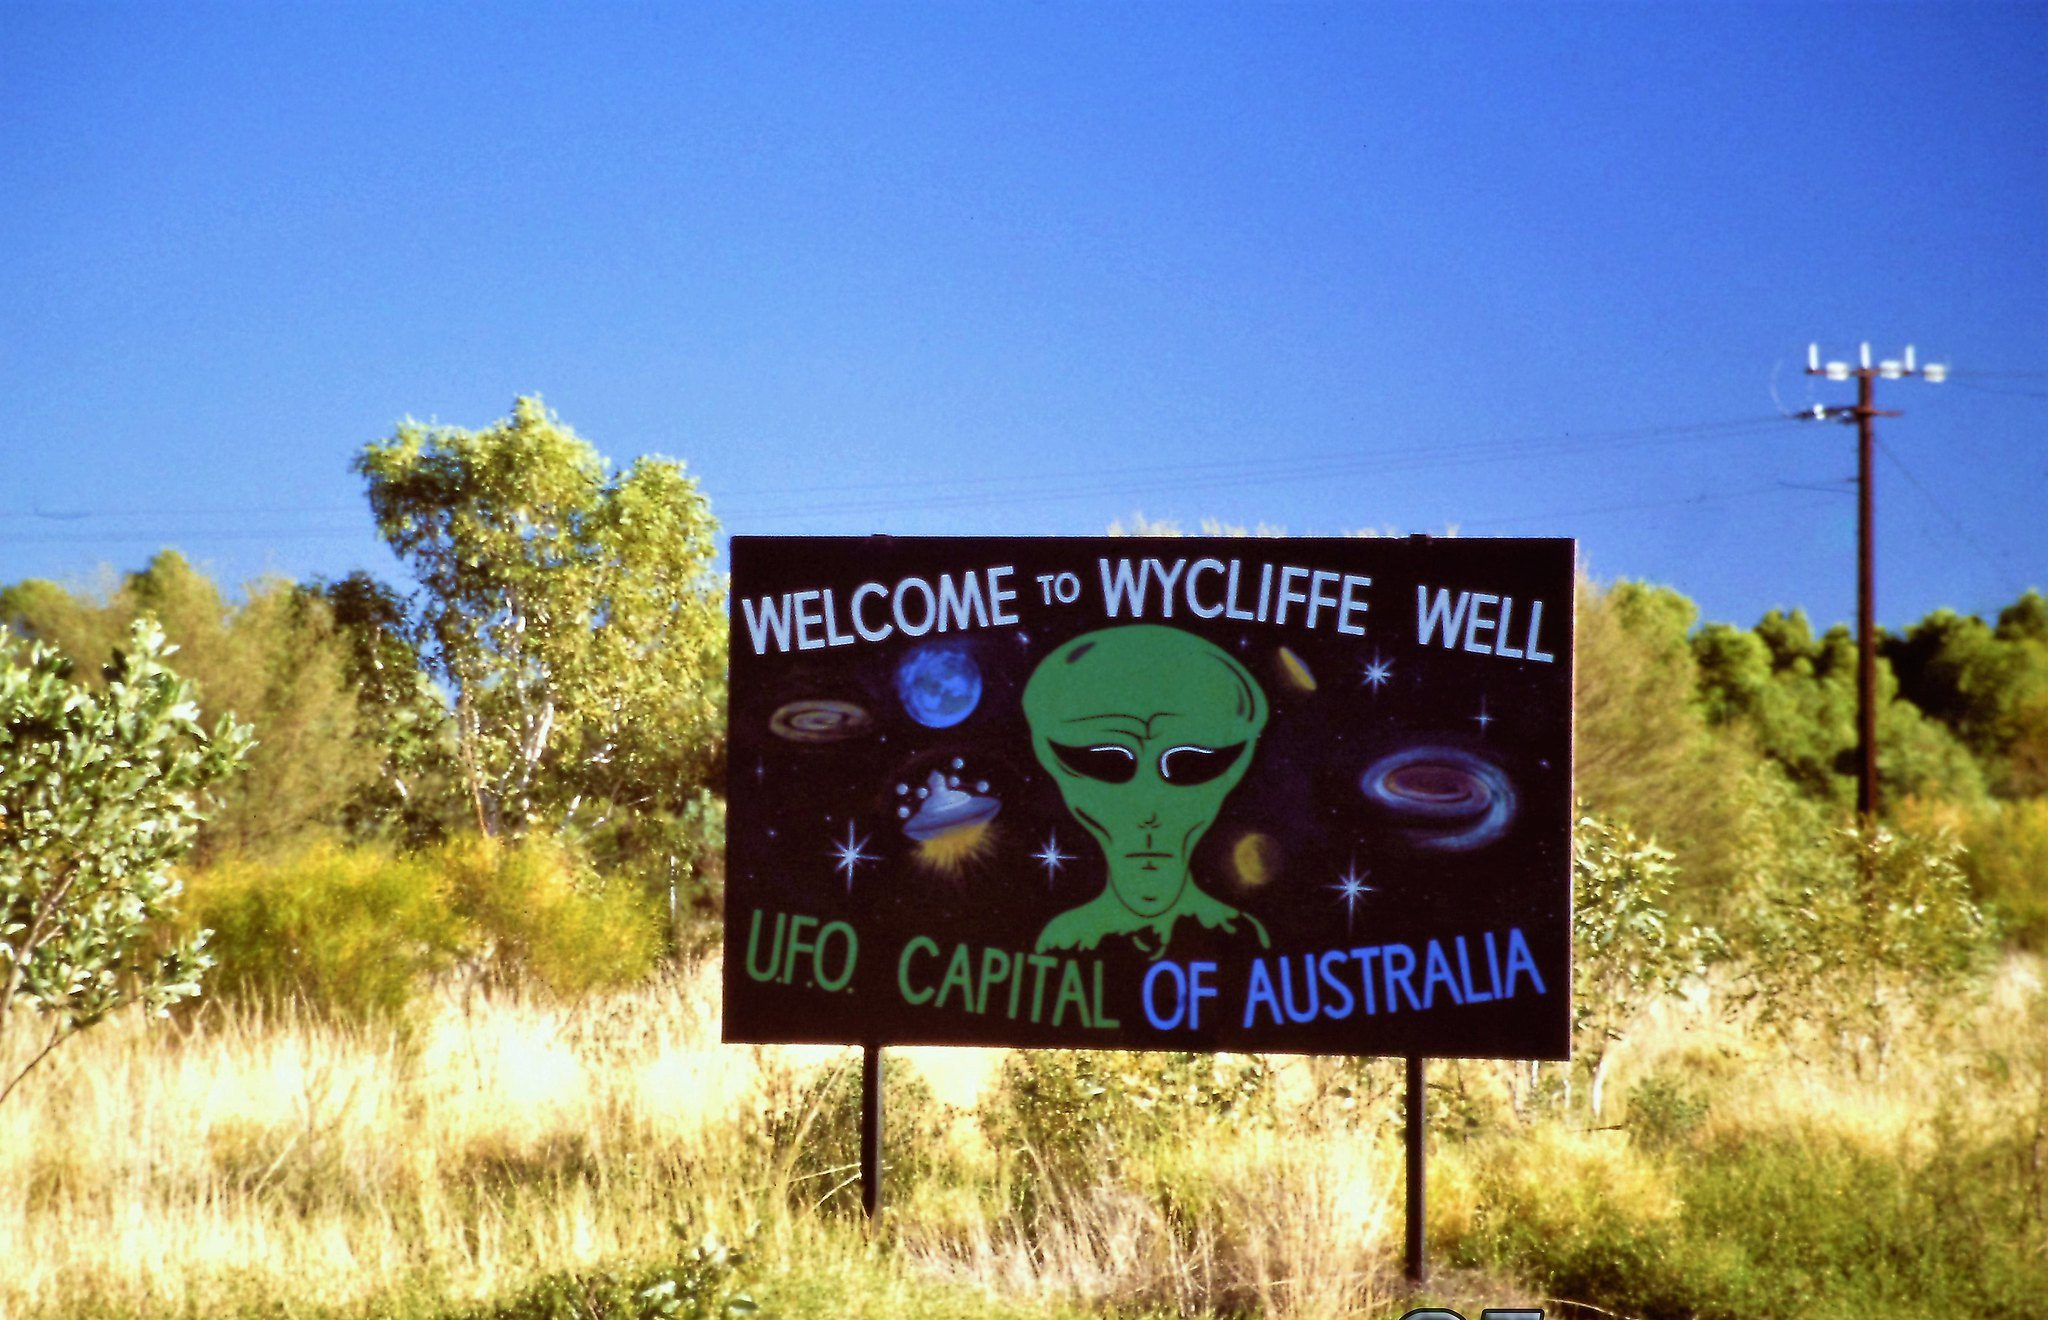 wycliffe well ufo capital